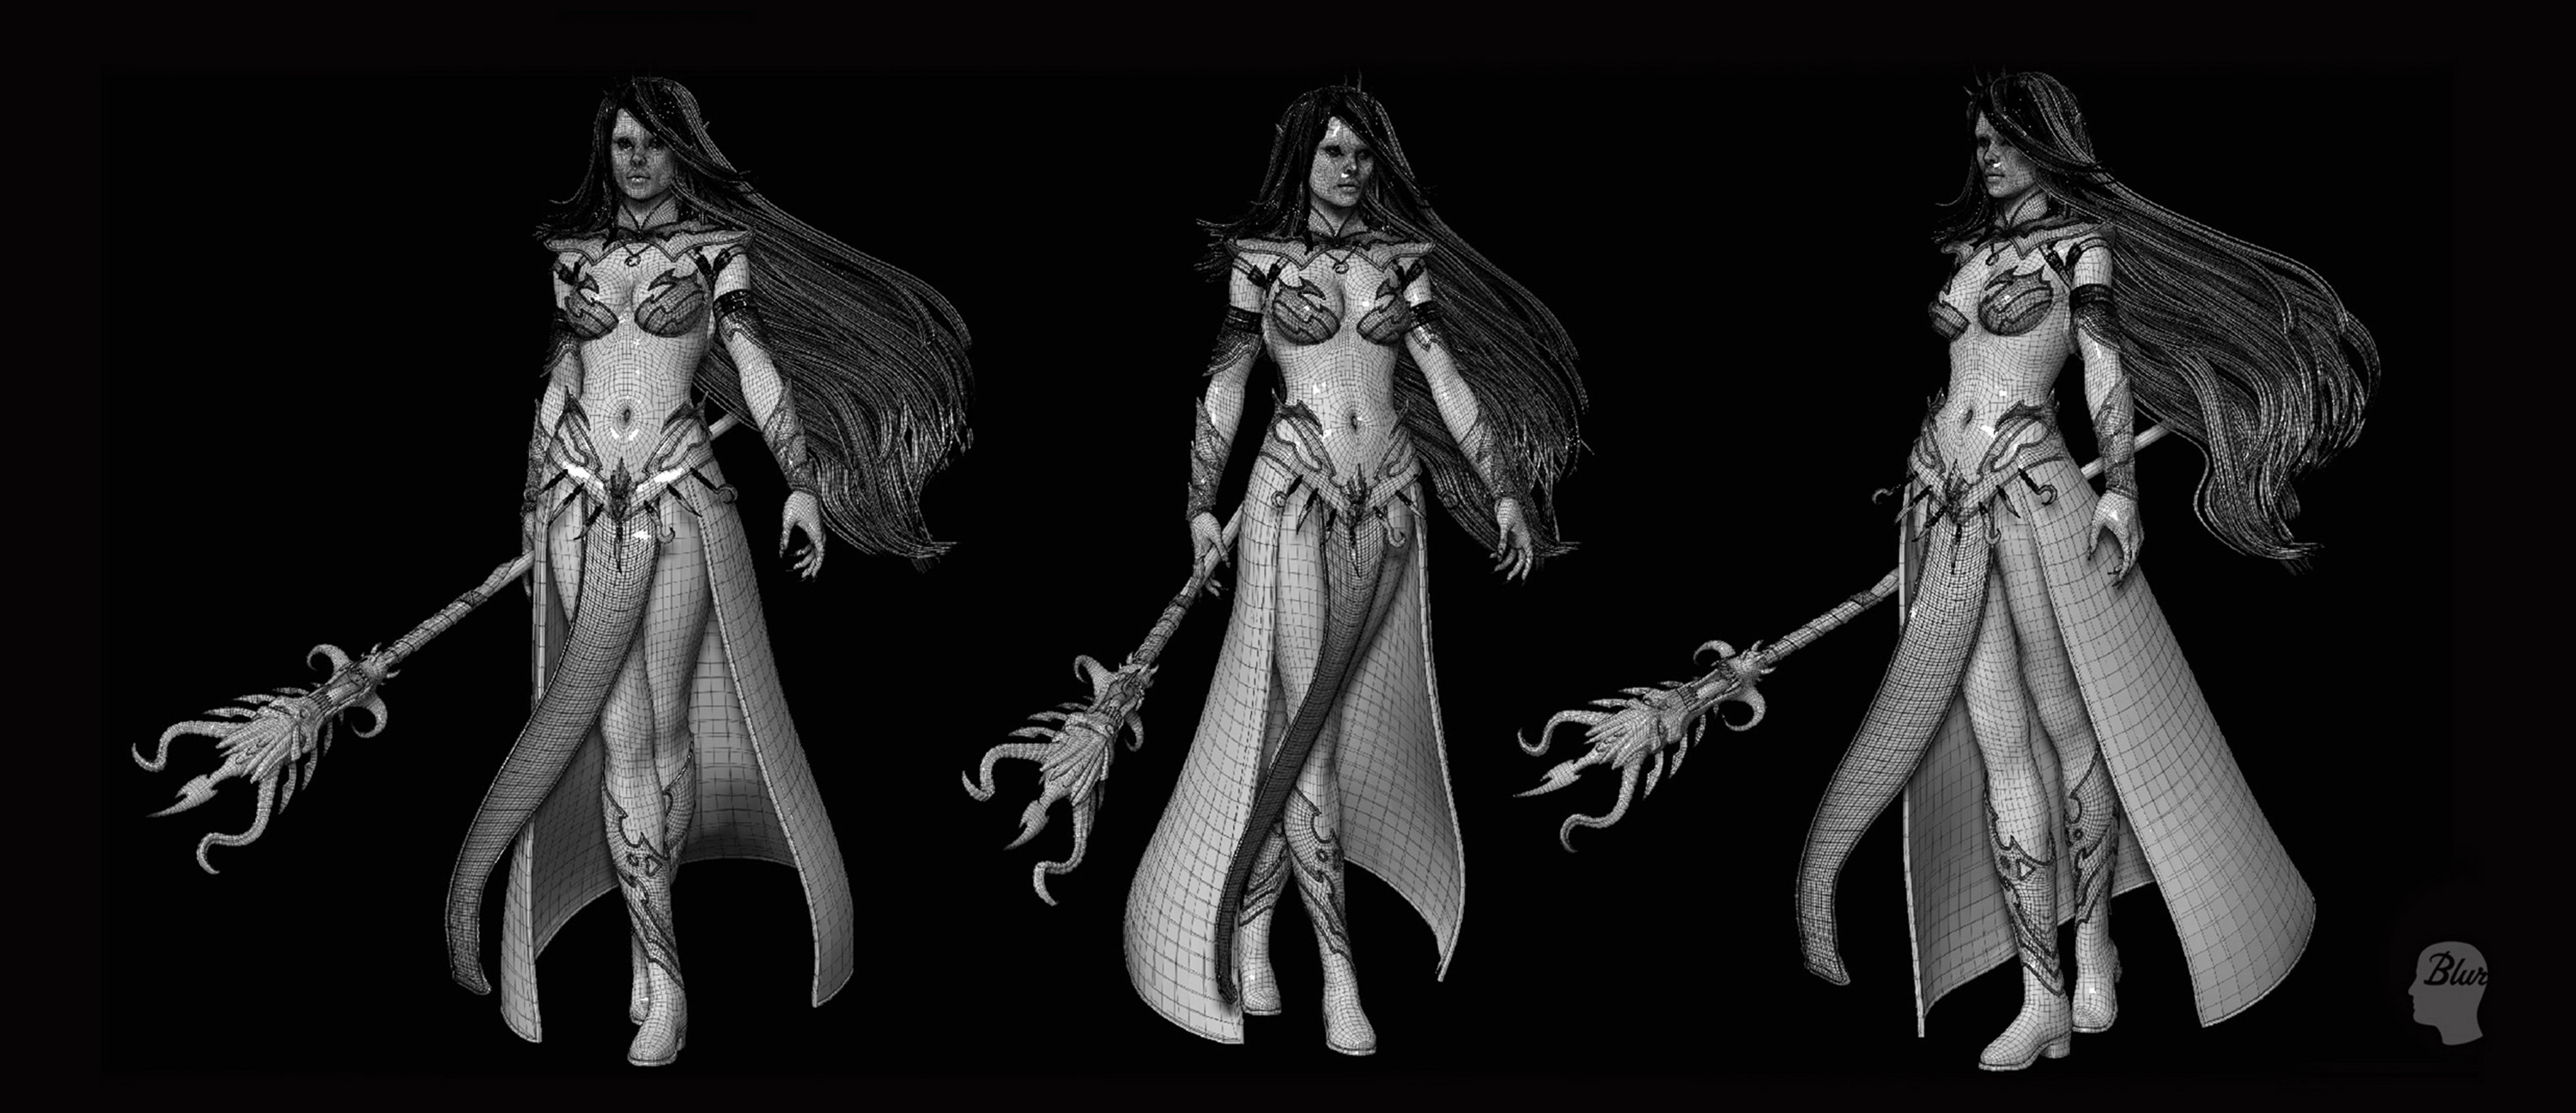 Warhammer Age Of Reckoning - DarkElf Sorceress